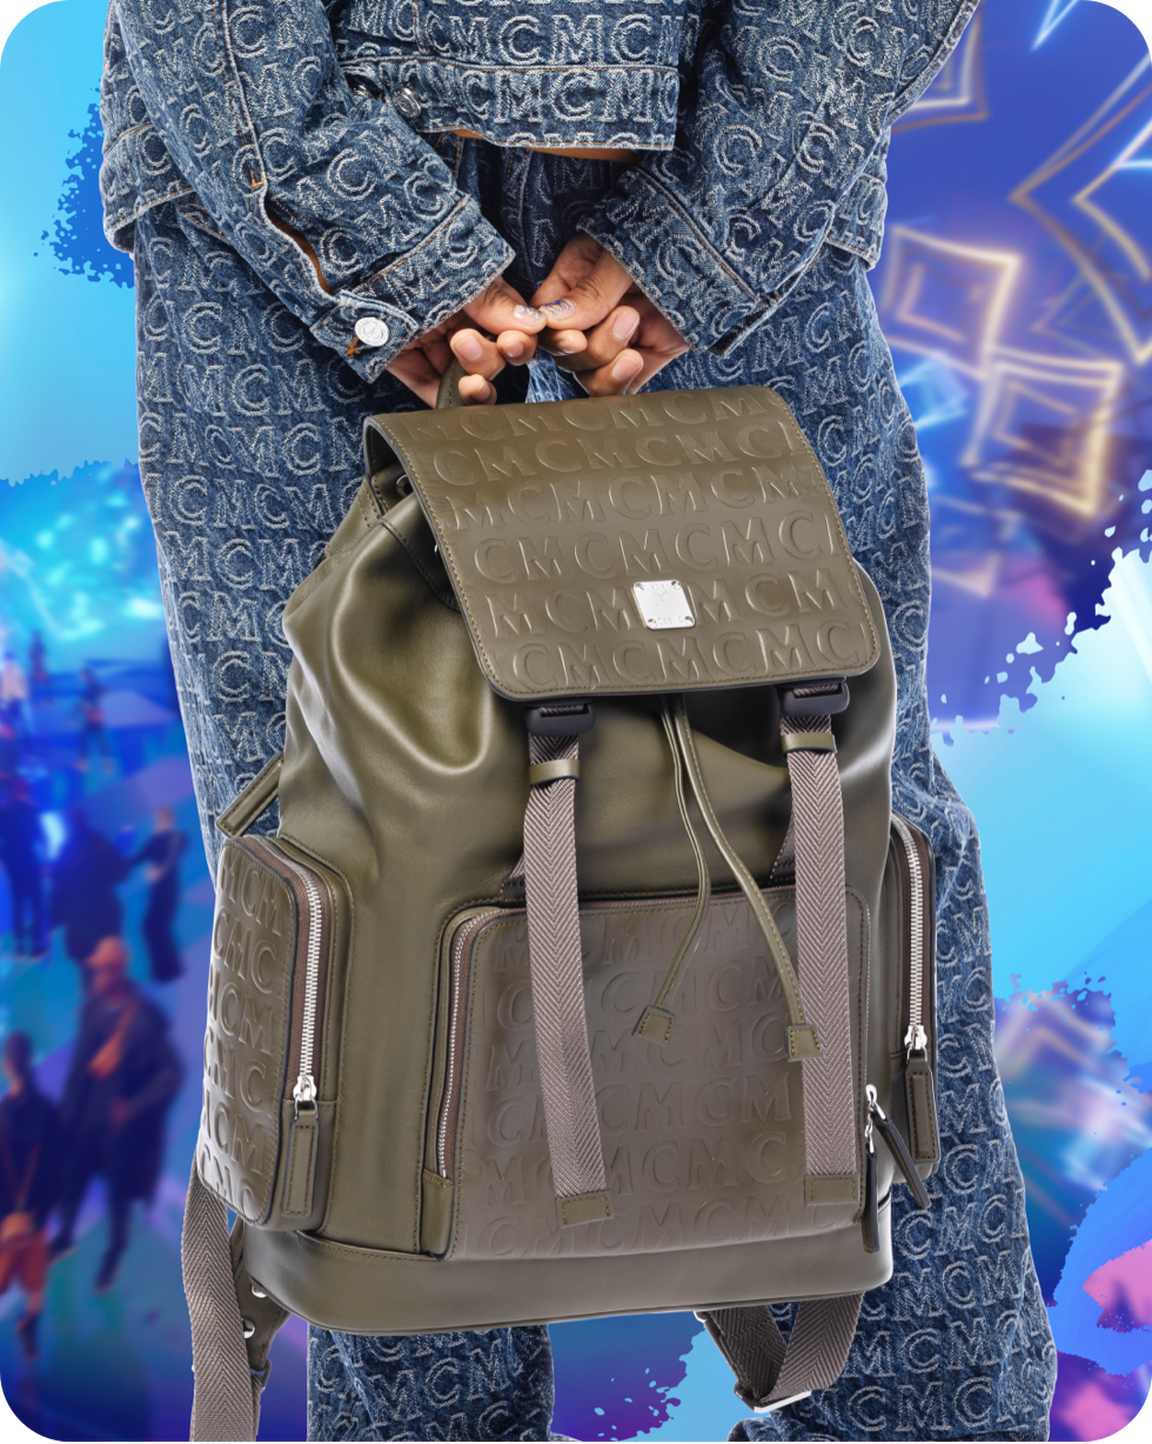 SHOP MCM BACKPACKS